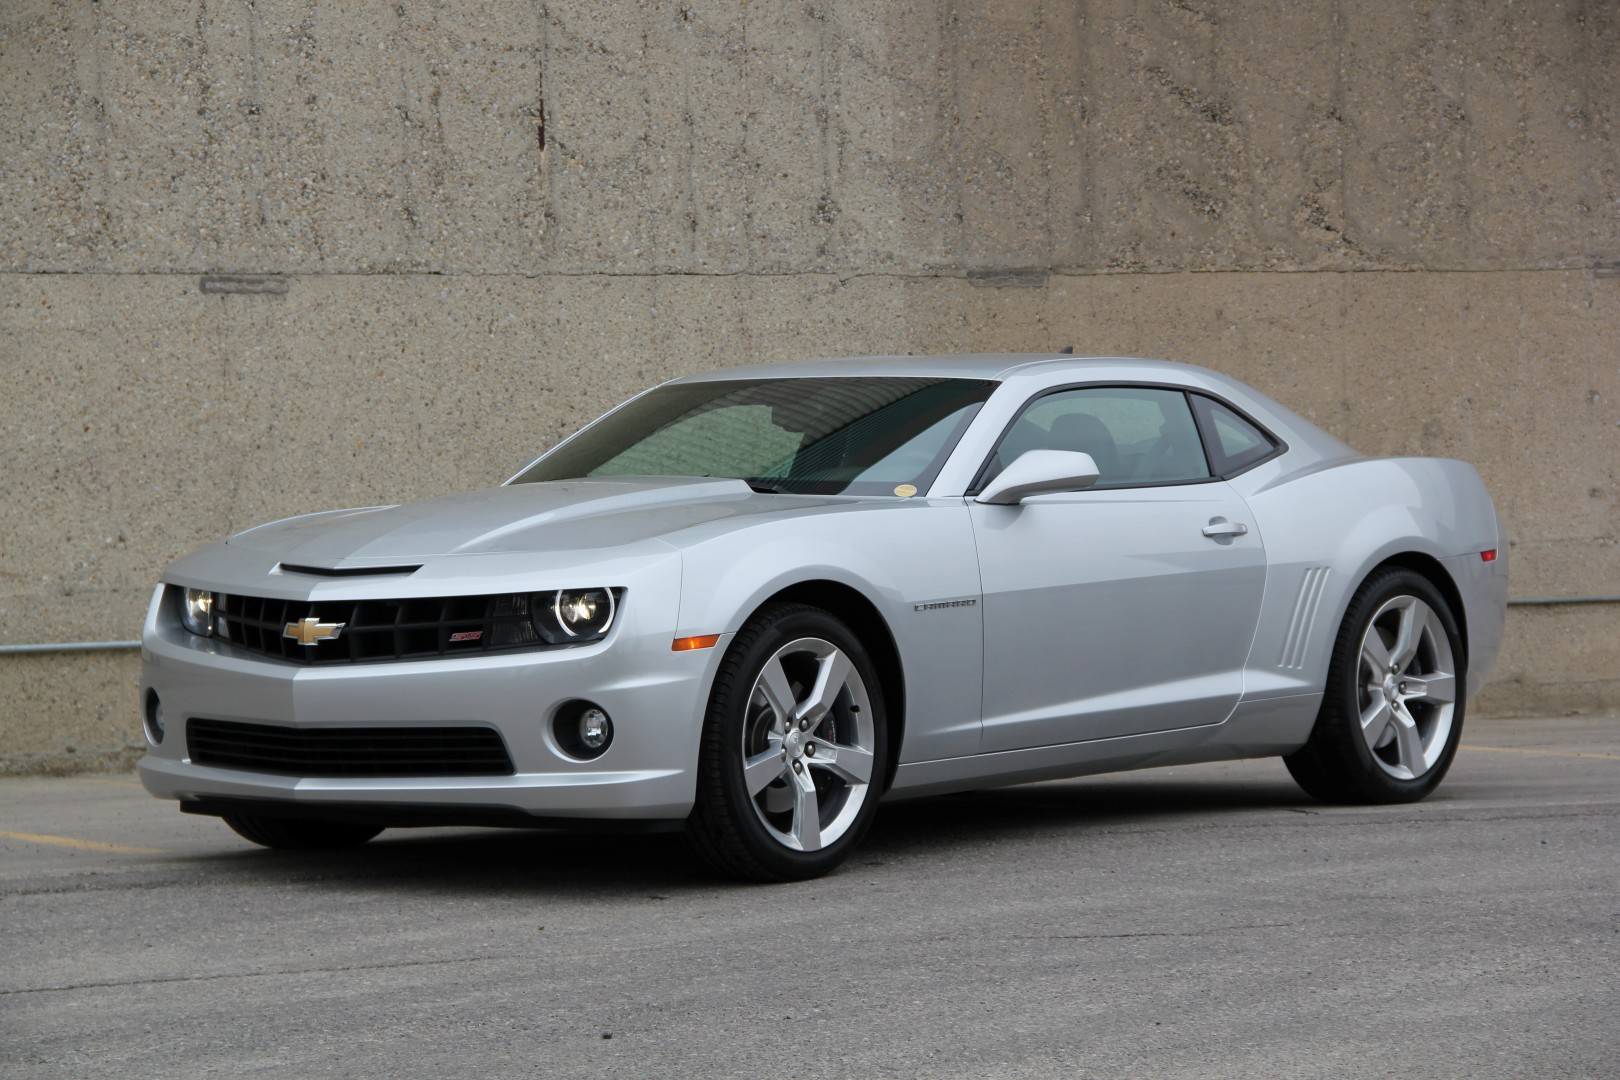 2010 chevrolet camaro ss rs 2ss 6 speed envision auto calgary highline luxury sports. Black Bedroom Furniture Sets. Home Design Ideas